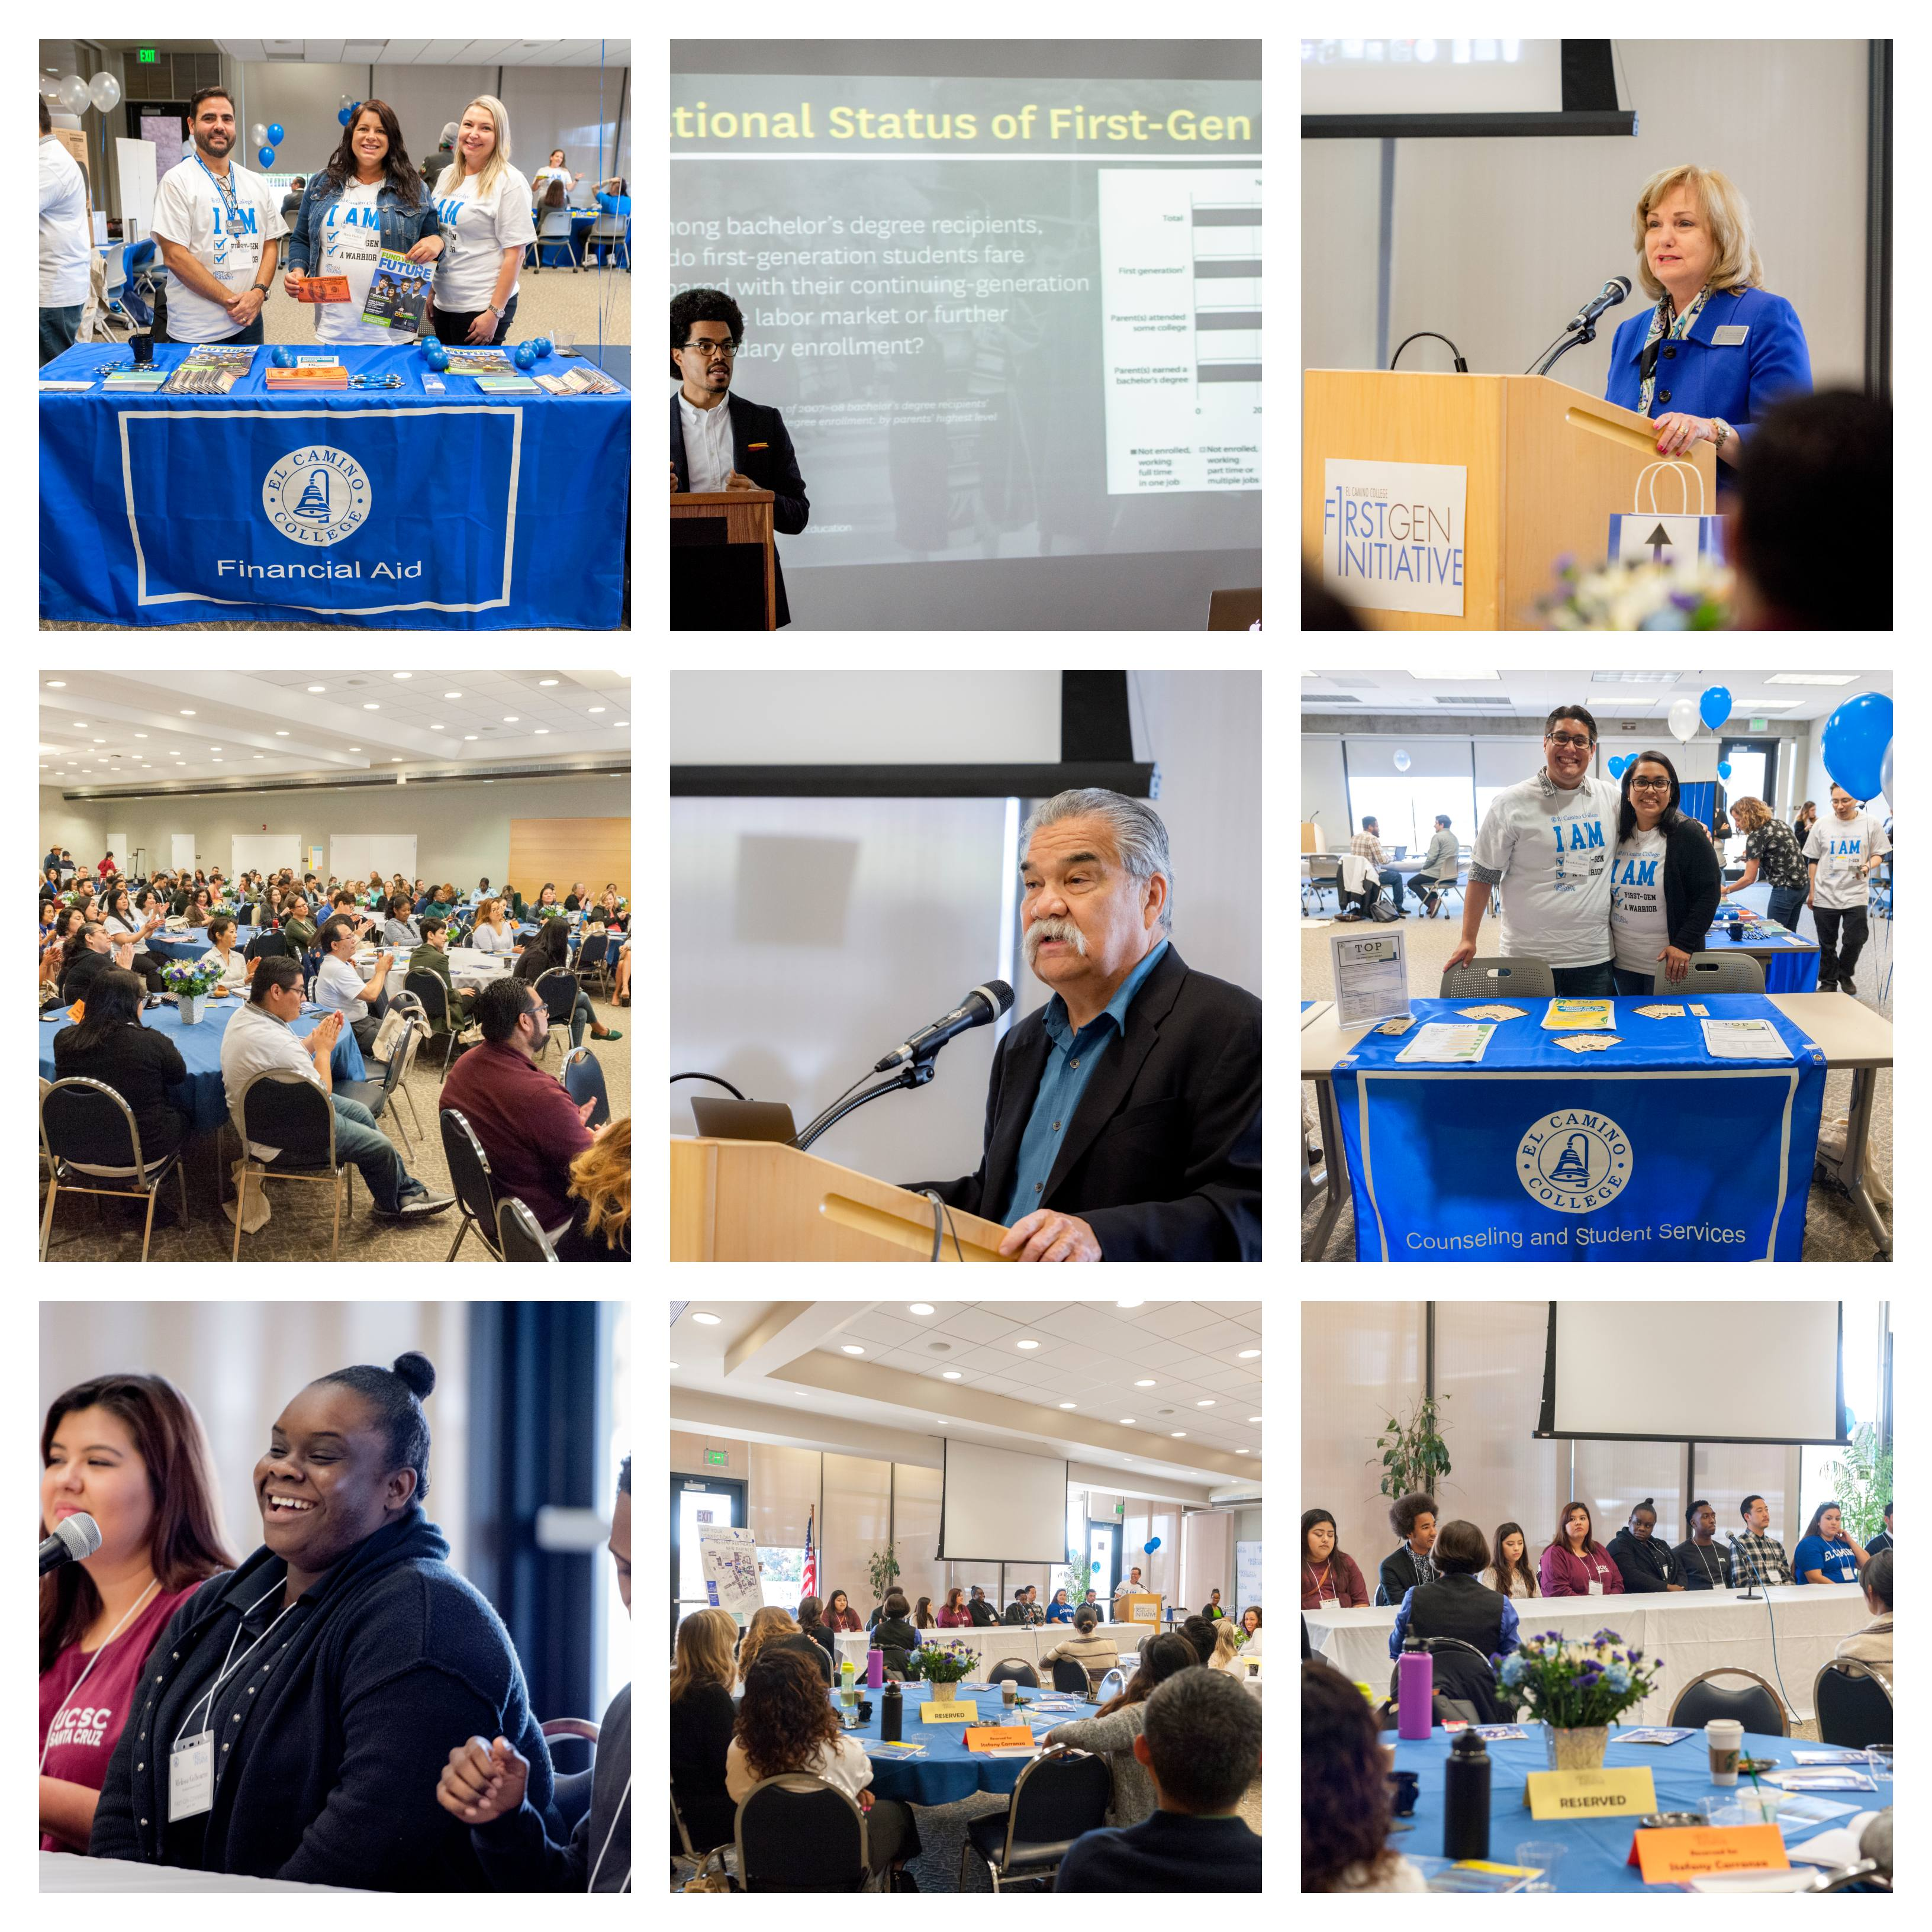 Photo Collage of First-Gen Conference